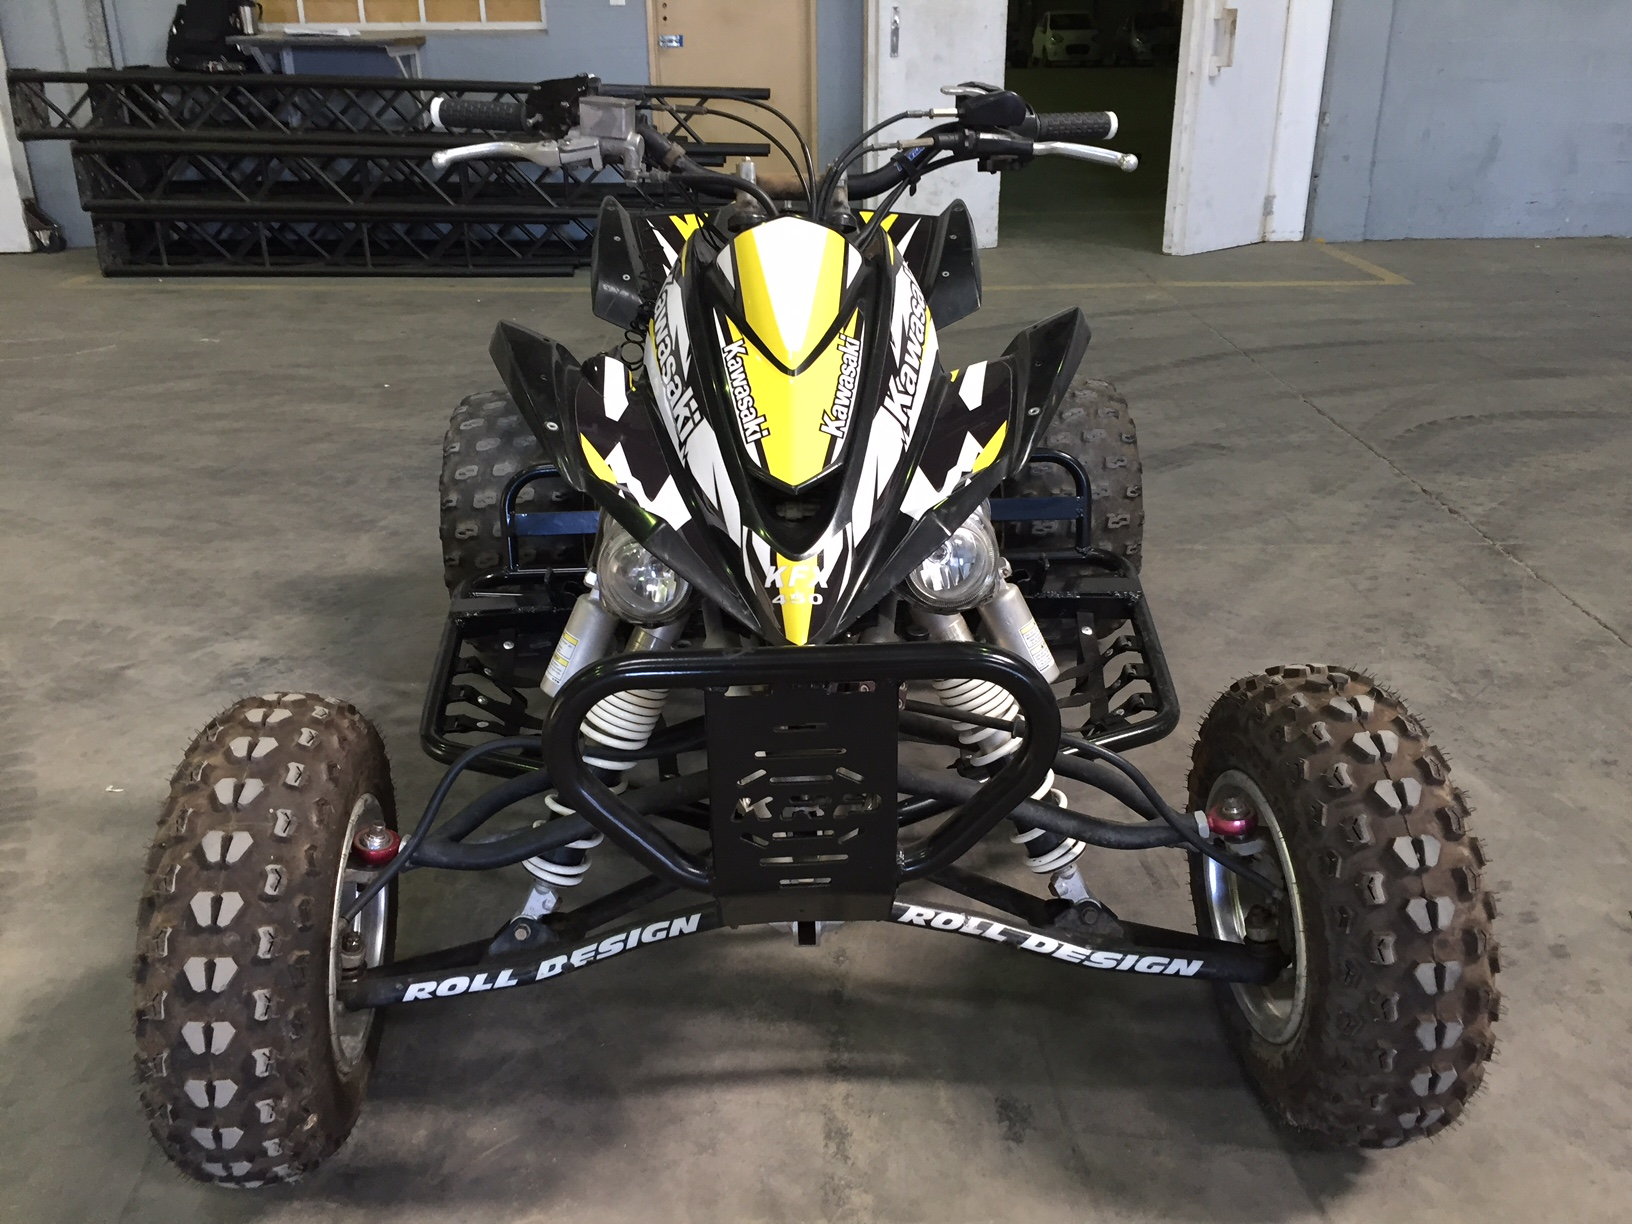 2007 Kawaksaki Quad bike